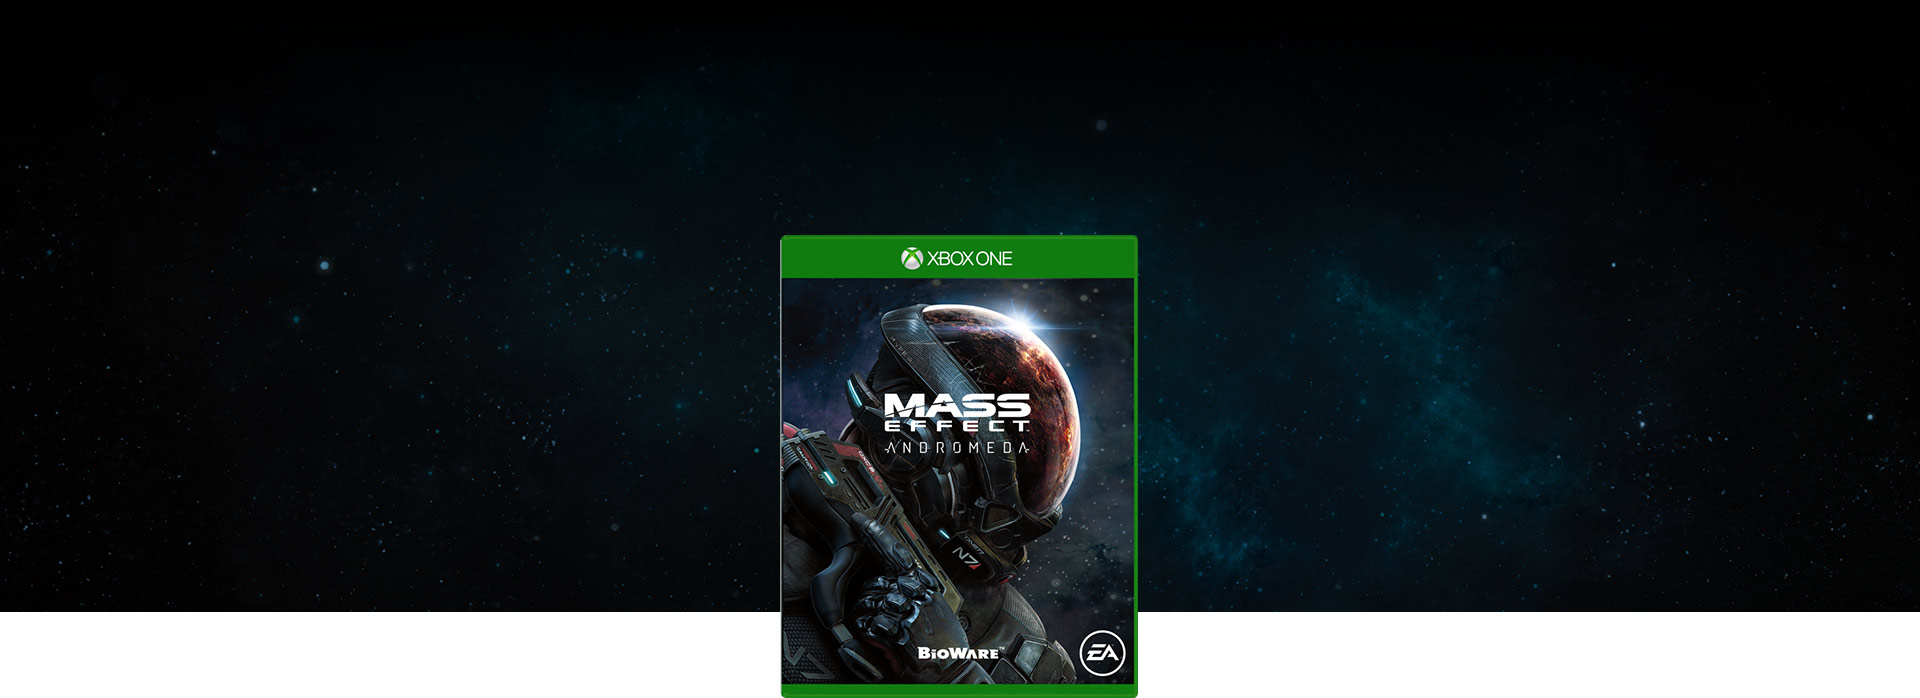 Mass Effect Andromeda-coverbillede